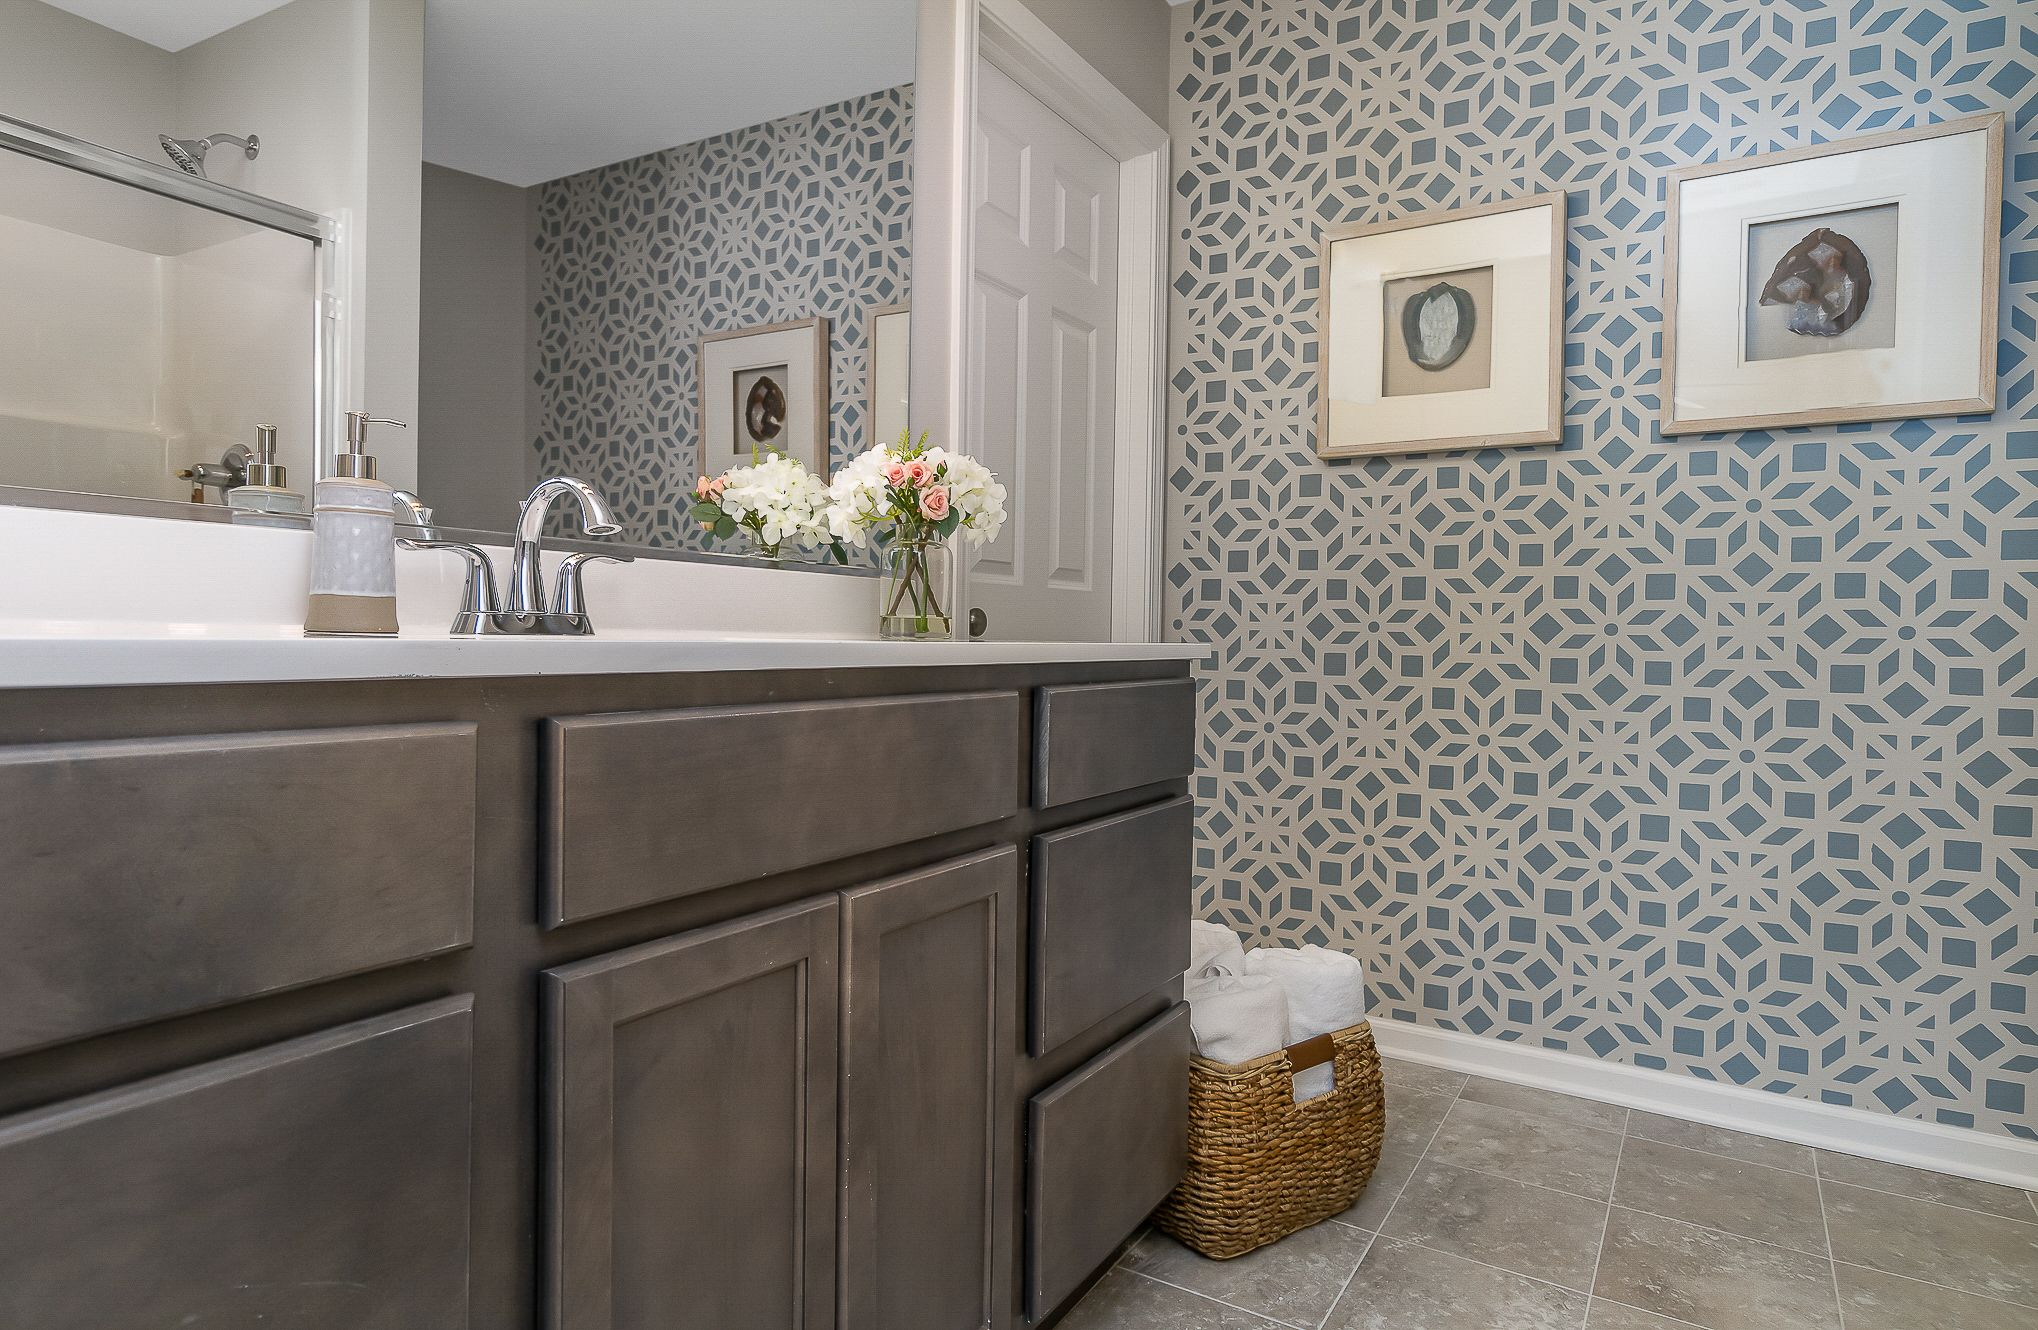 Bathroom featured in the Cordoba By Olthof Homes in Indianapolis, IN